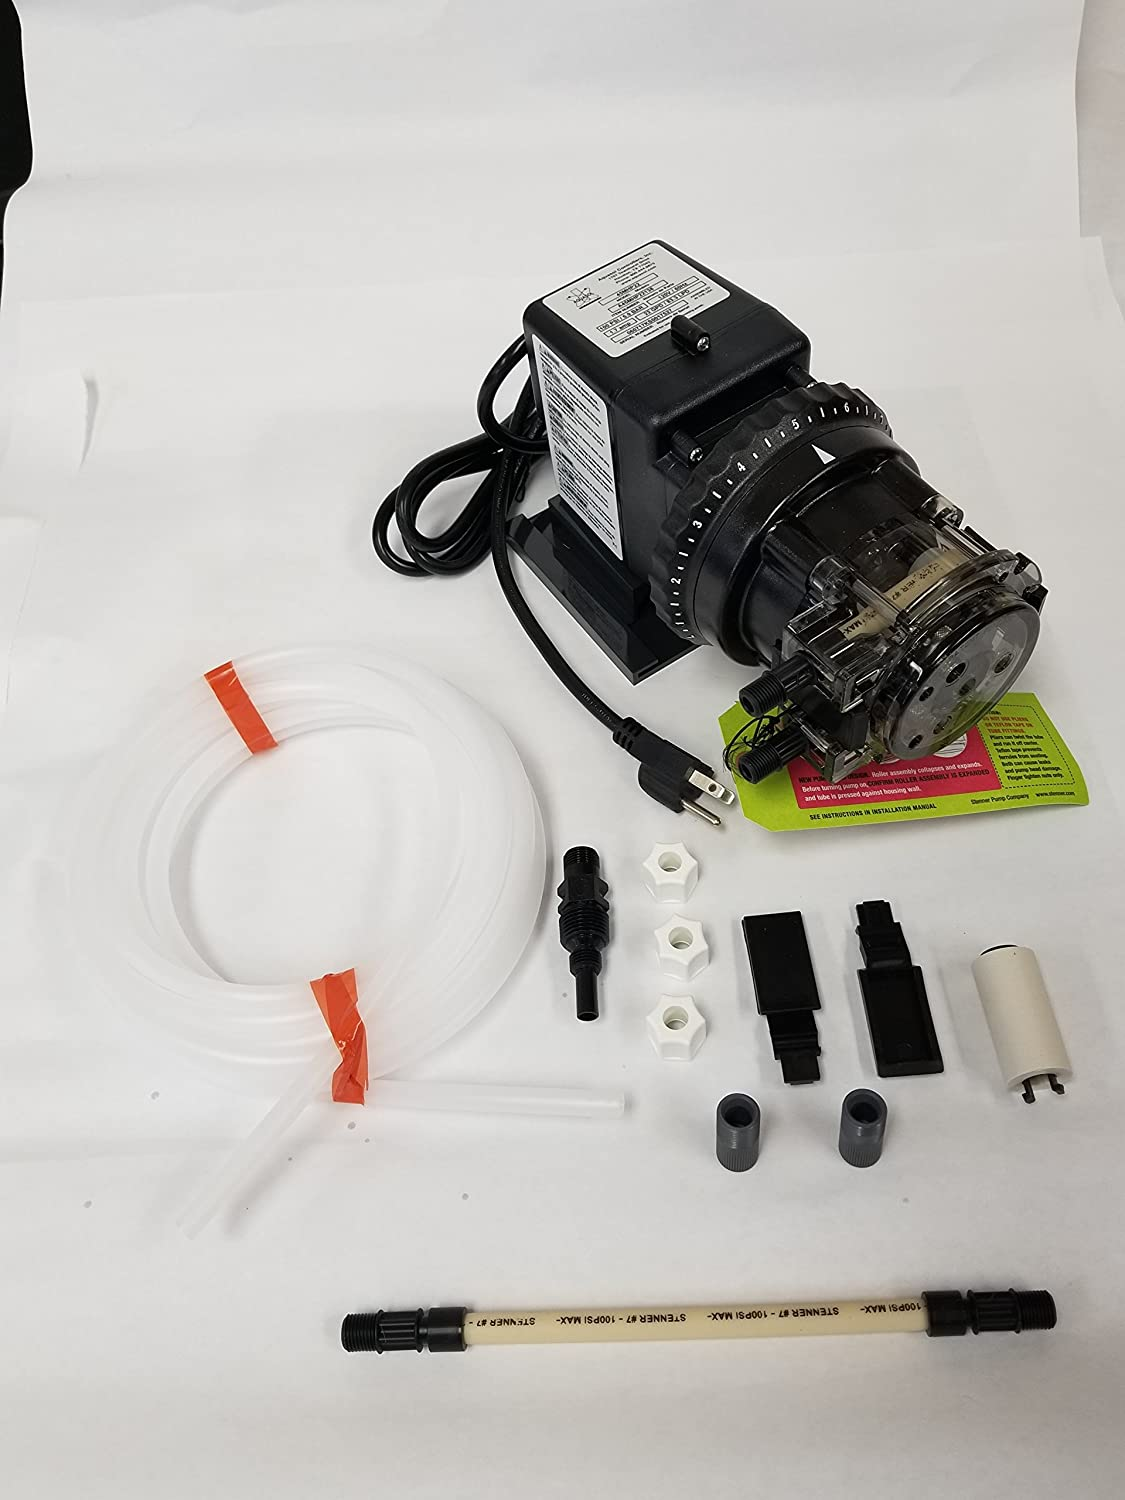 Model number 85MJL1A3S Stenner Pump 85m1 Rated at 0.3 to 5 gpd adjustable head 120 Volts Stenner Peristaltic Pump Adjustable Head Rated at 25 psi - Ideal Chlorine Injection Pump